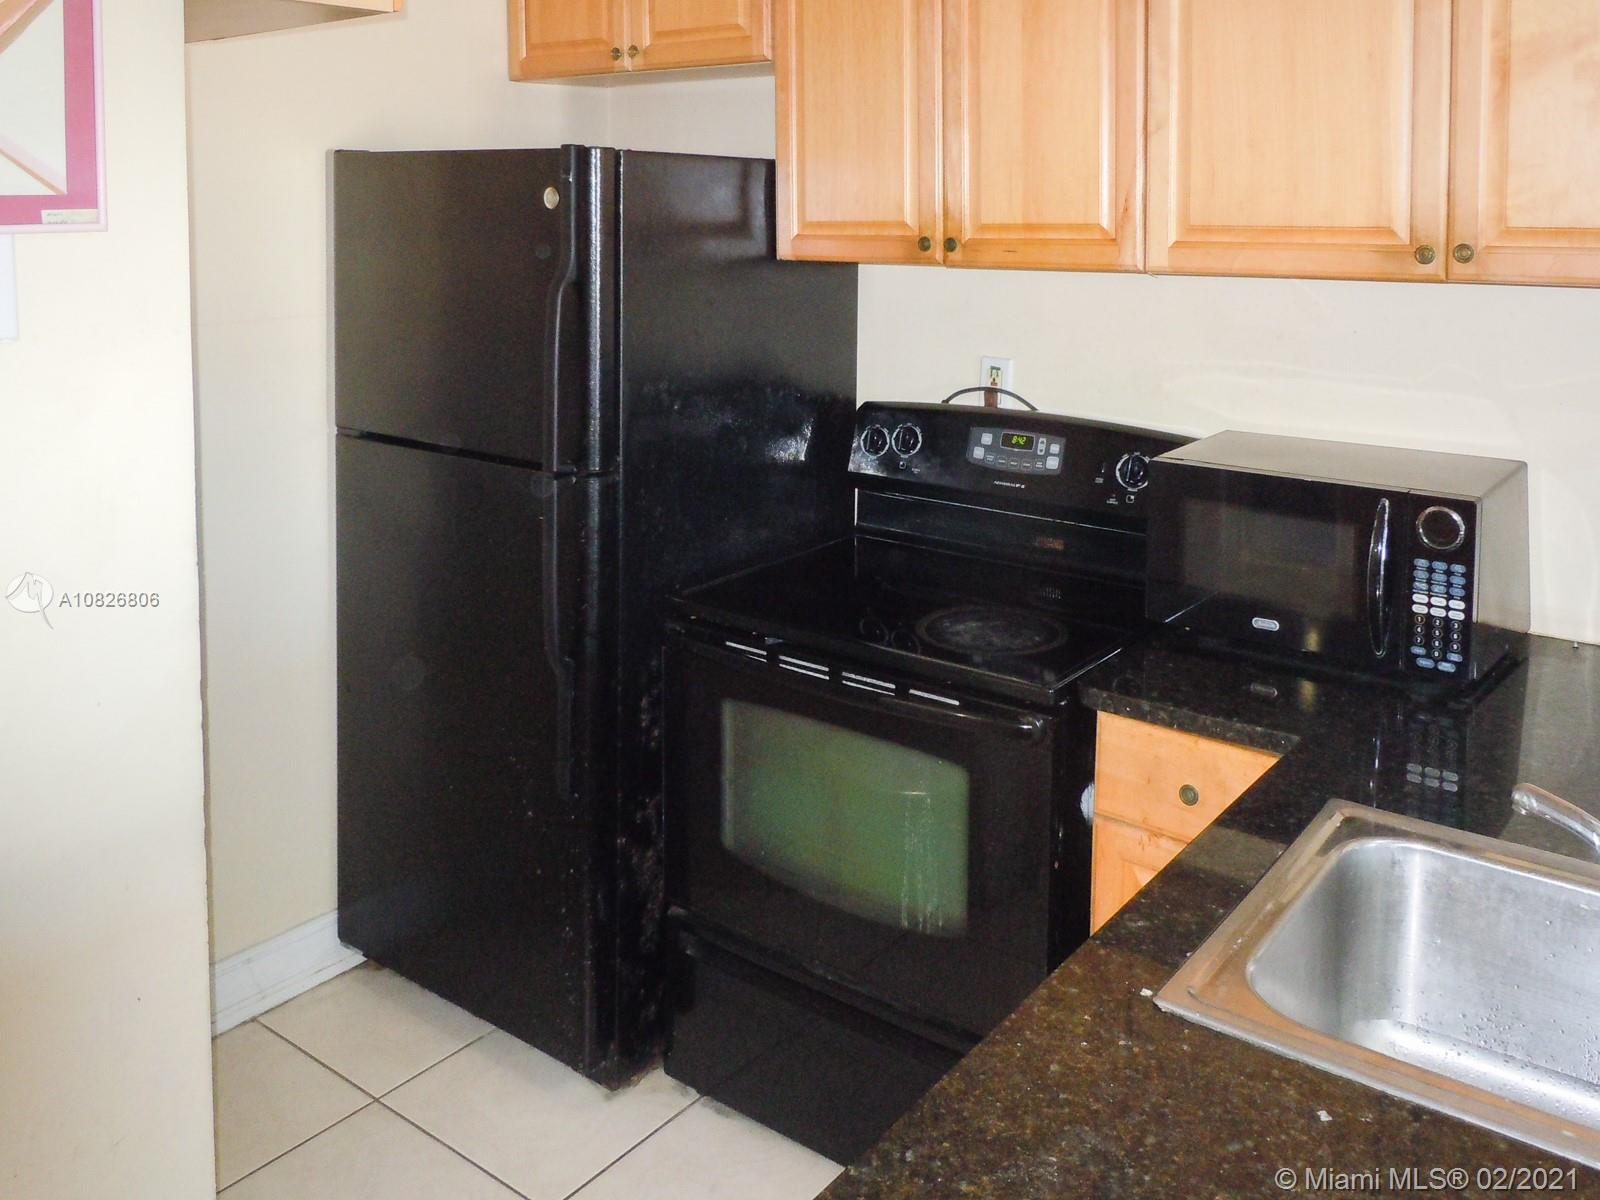 Island Place, 1455 N Treasure Dr Unit 7 D, North Bay Village, Florida 33141, image 4